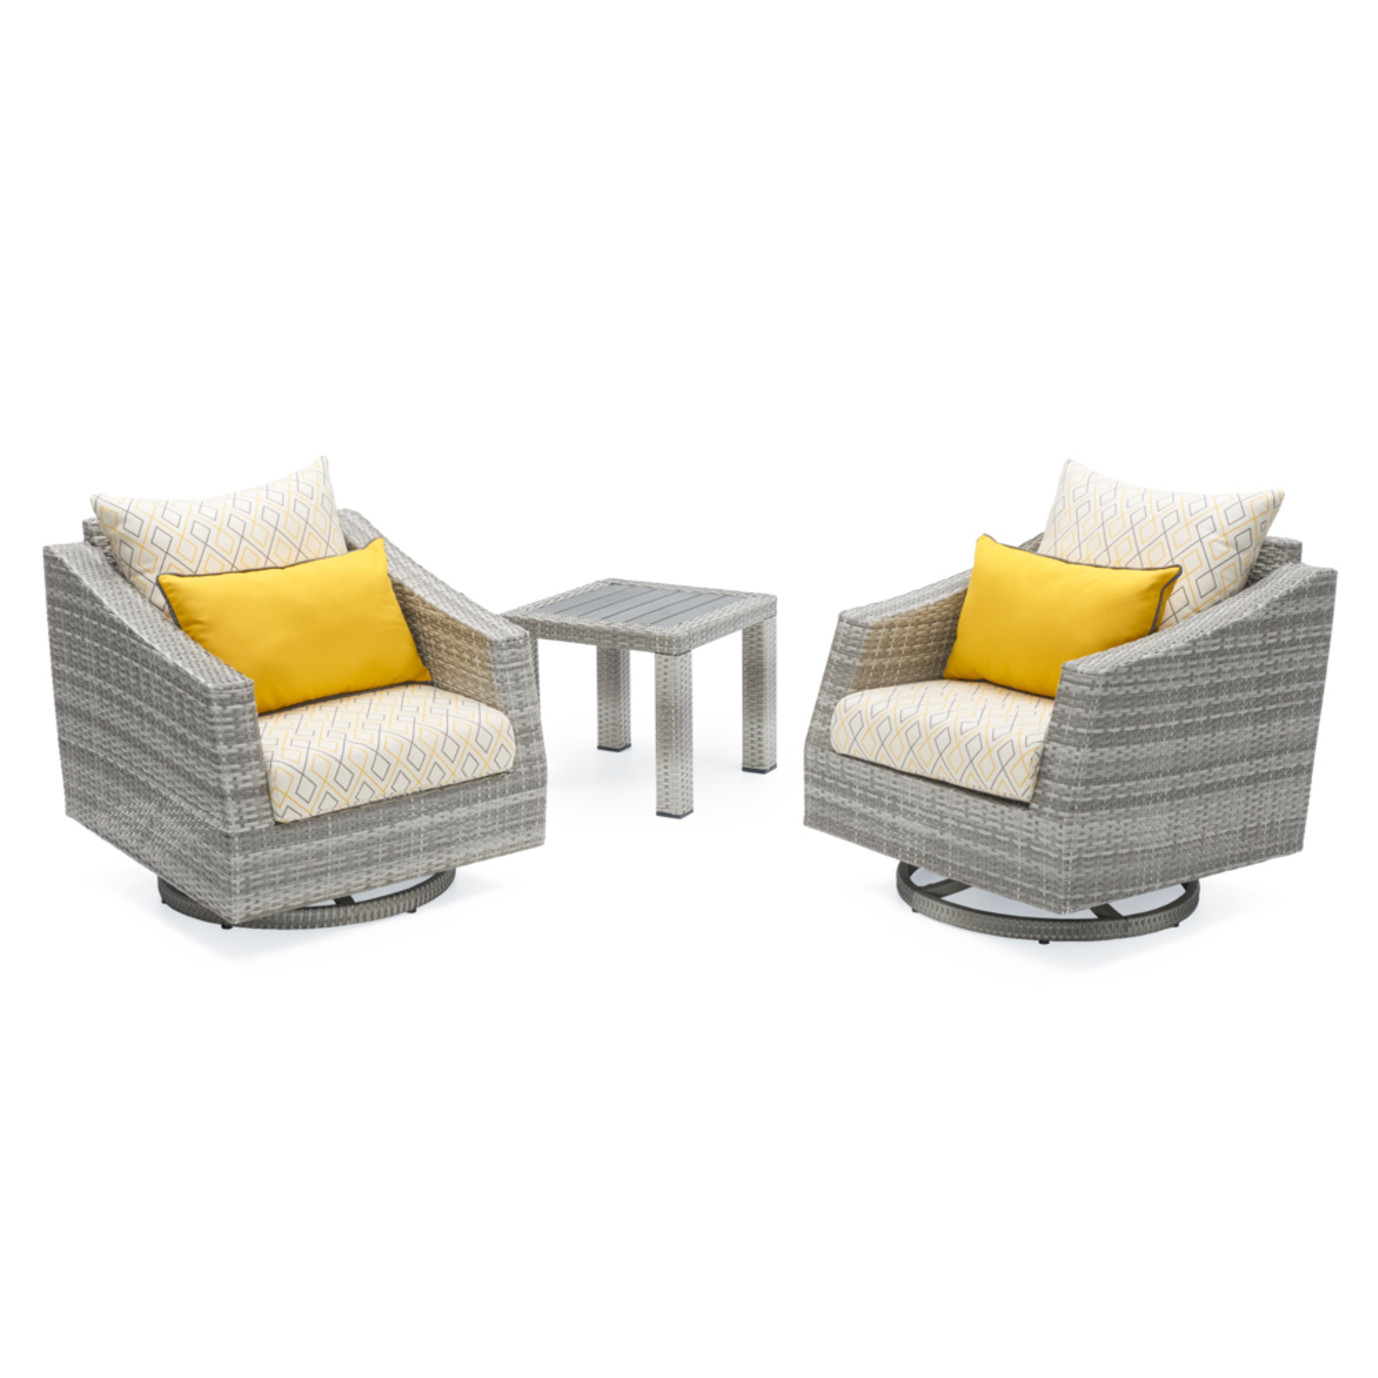 Cannes™ Deluxe Motion Club Chairs & Side Table - Sunflower Yellow